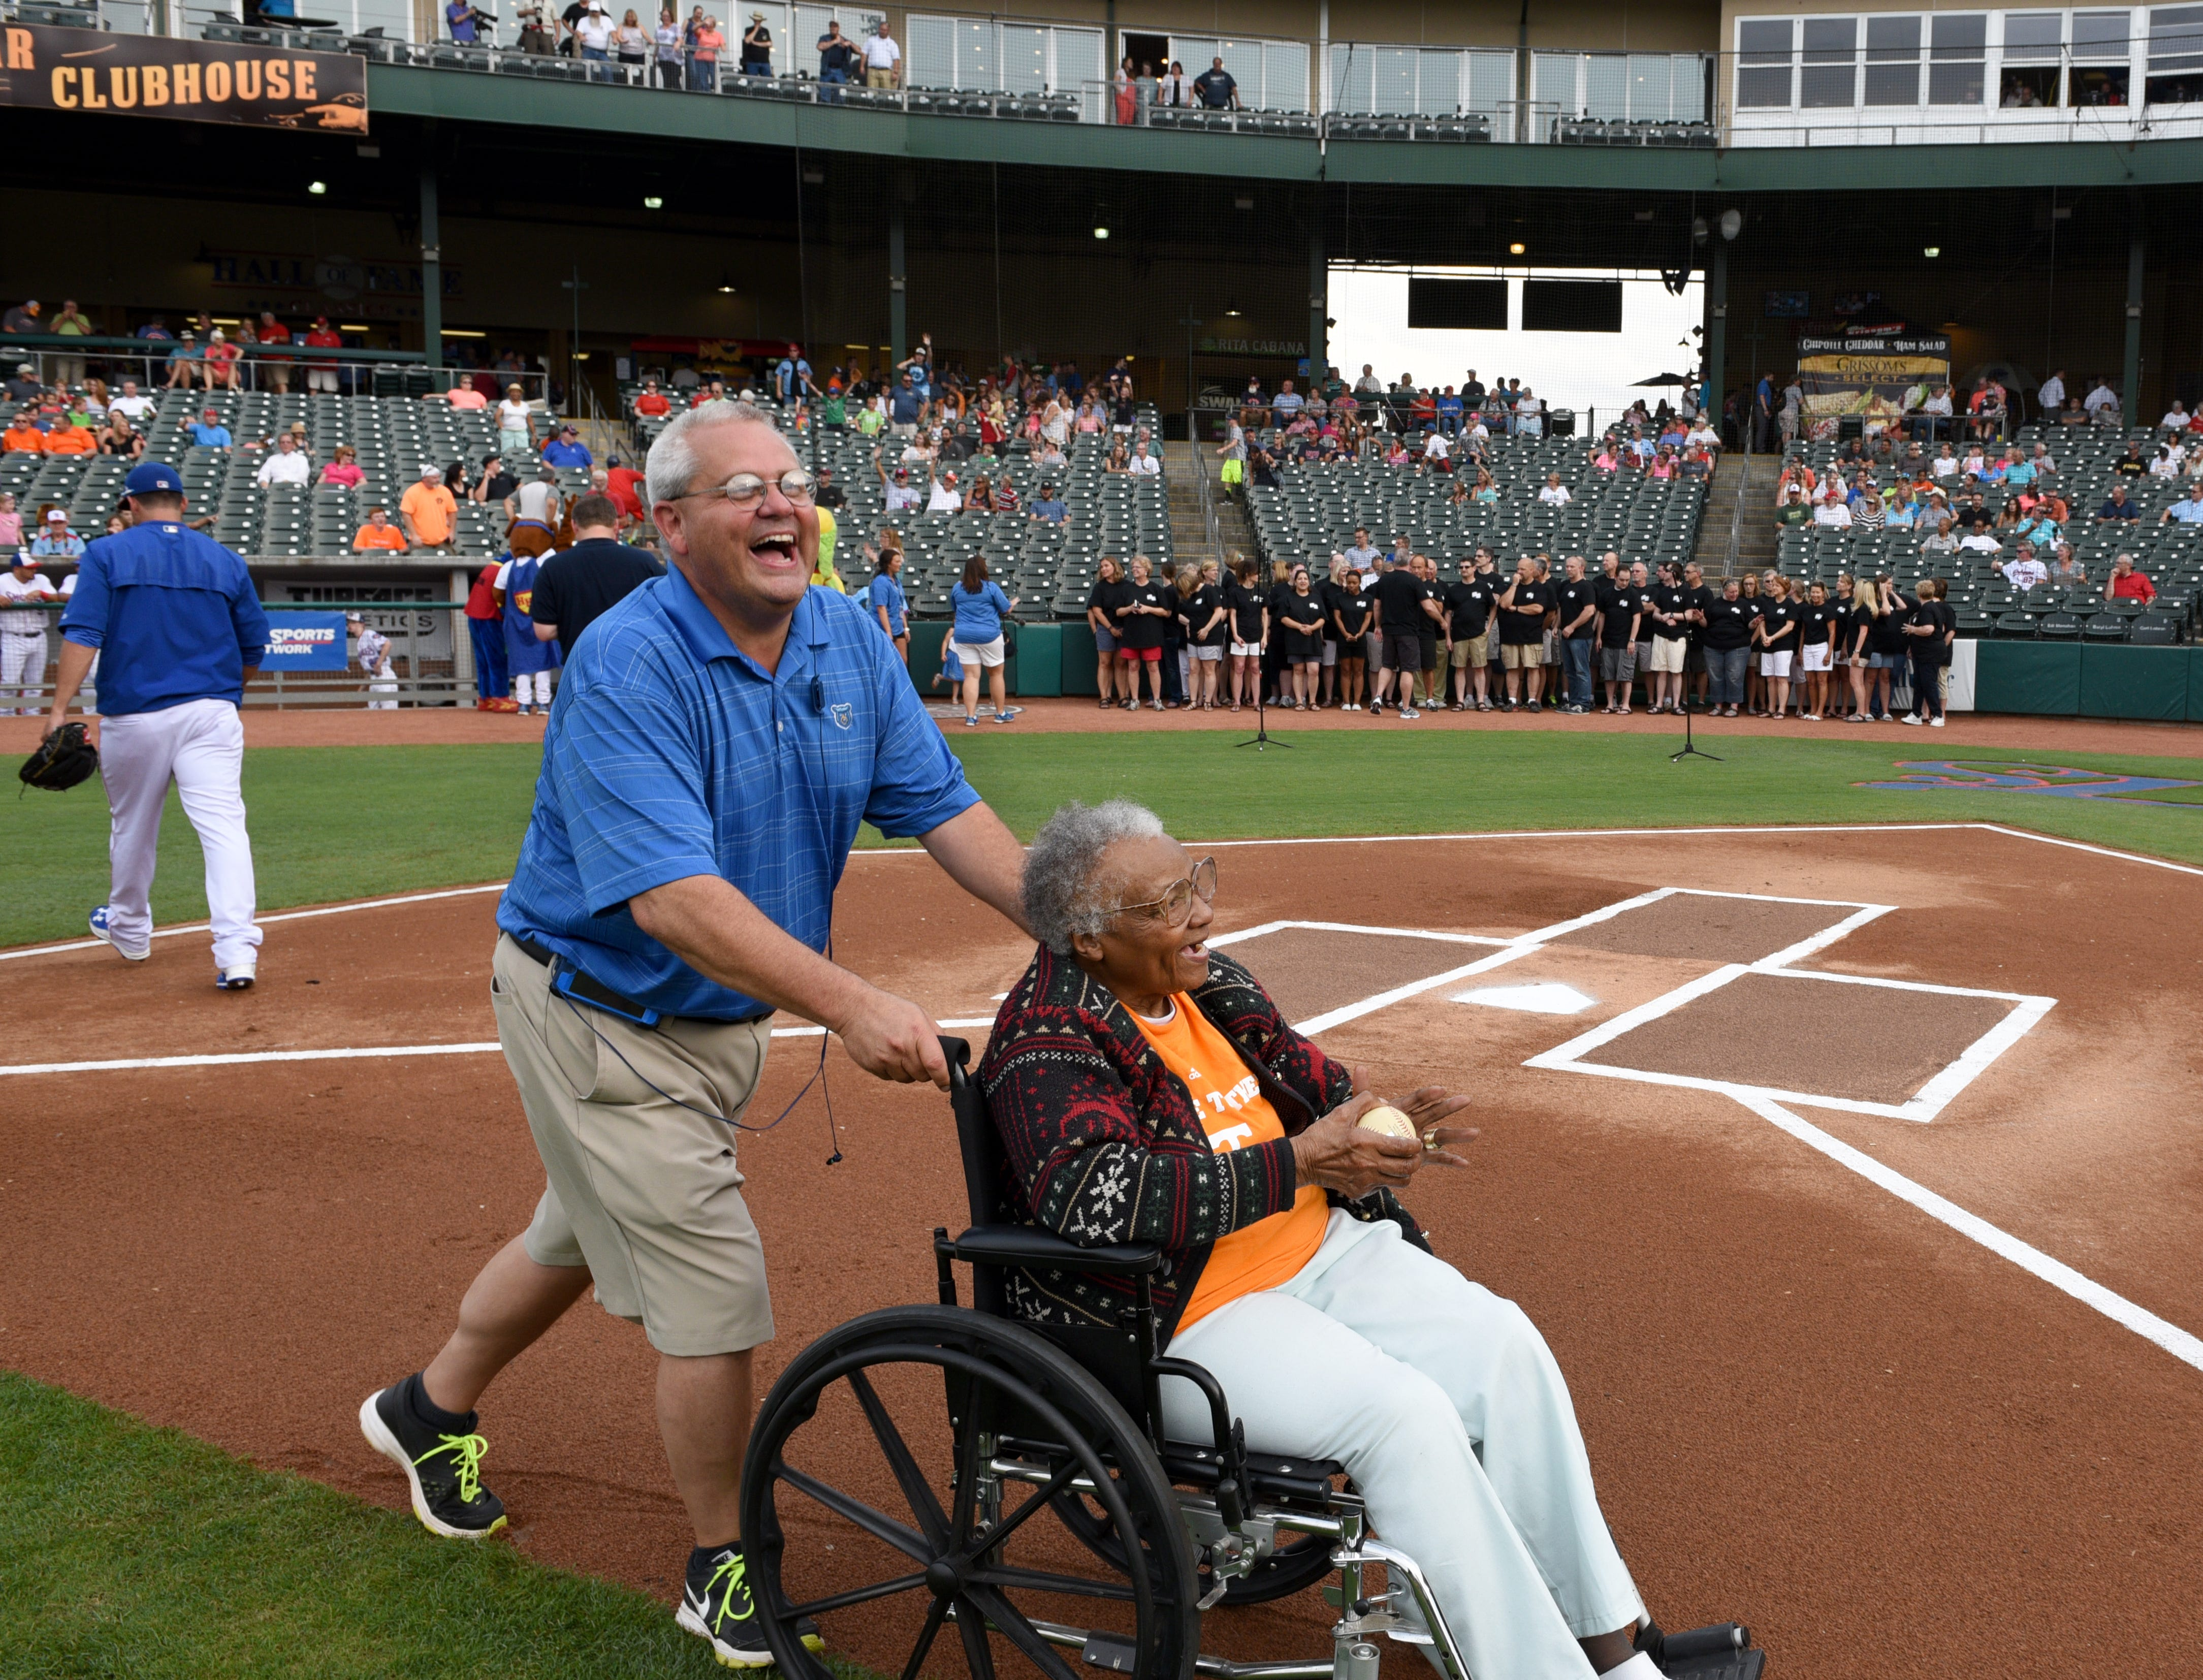 Craig Jenkins laughs hearing Helen Turner, co-founder of the Love Kitchen, say she was shocked she got to keep the ball she threw out to start the Tennessee Smokies baseball game against the Mississippi Braves Thursday, Jun. 18, 2015.  The game was nationally televised by CBS Sports Network.